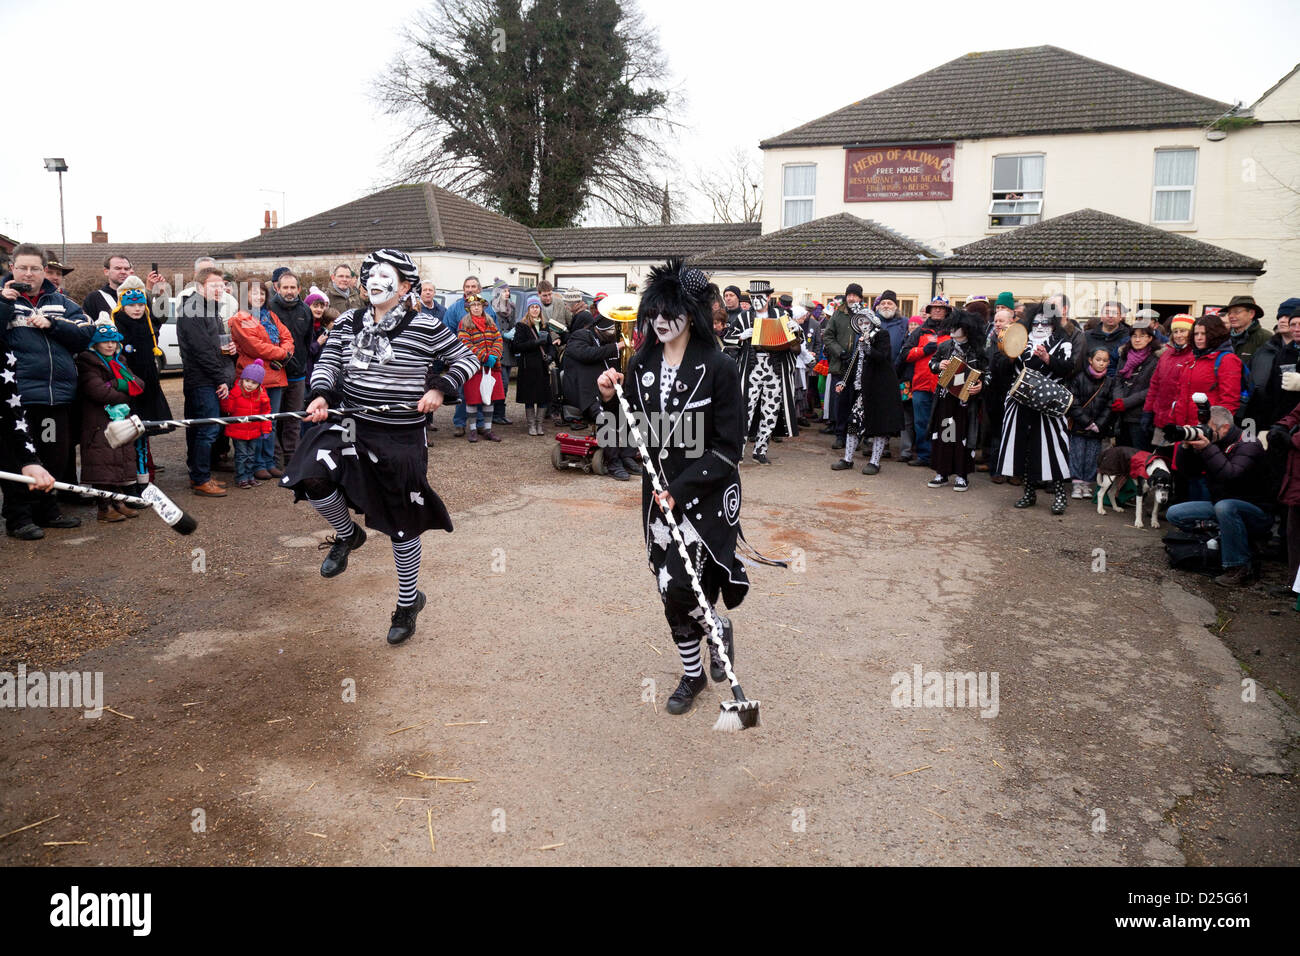 Morris dancing by Pig Dyke Molly dancers, Whittlesey Straw Bear festival, Cambridgeshire UK 2013 - Stock Image